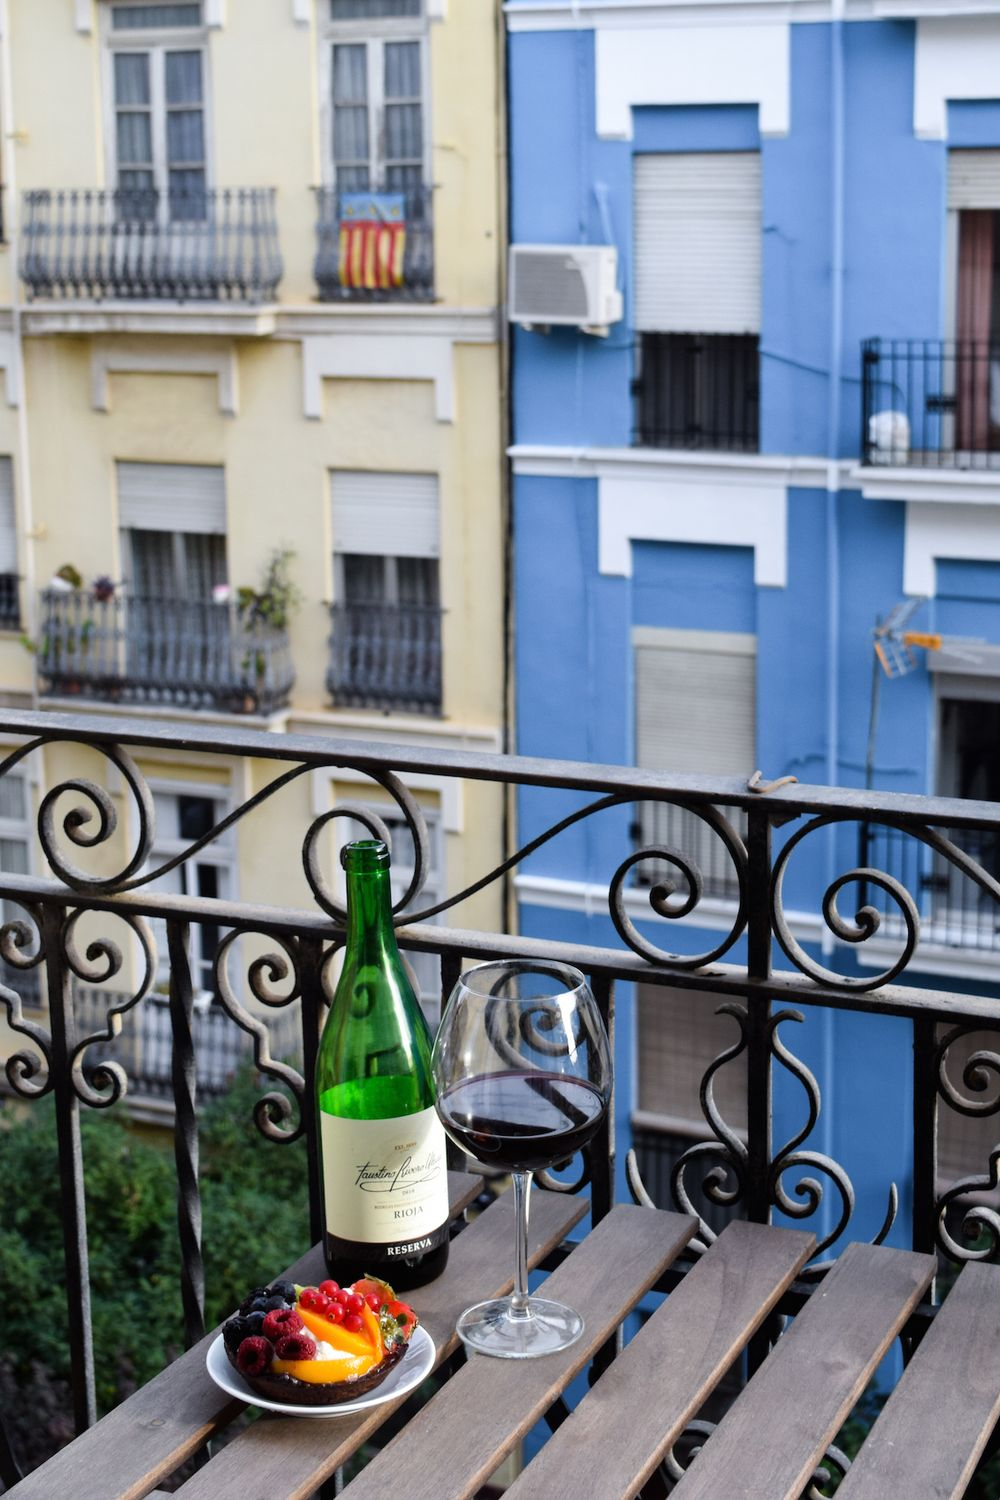 Balcony in Russafa, Valencia, Spain